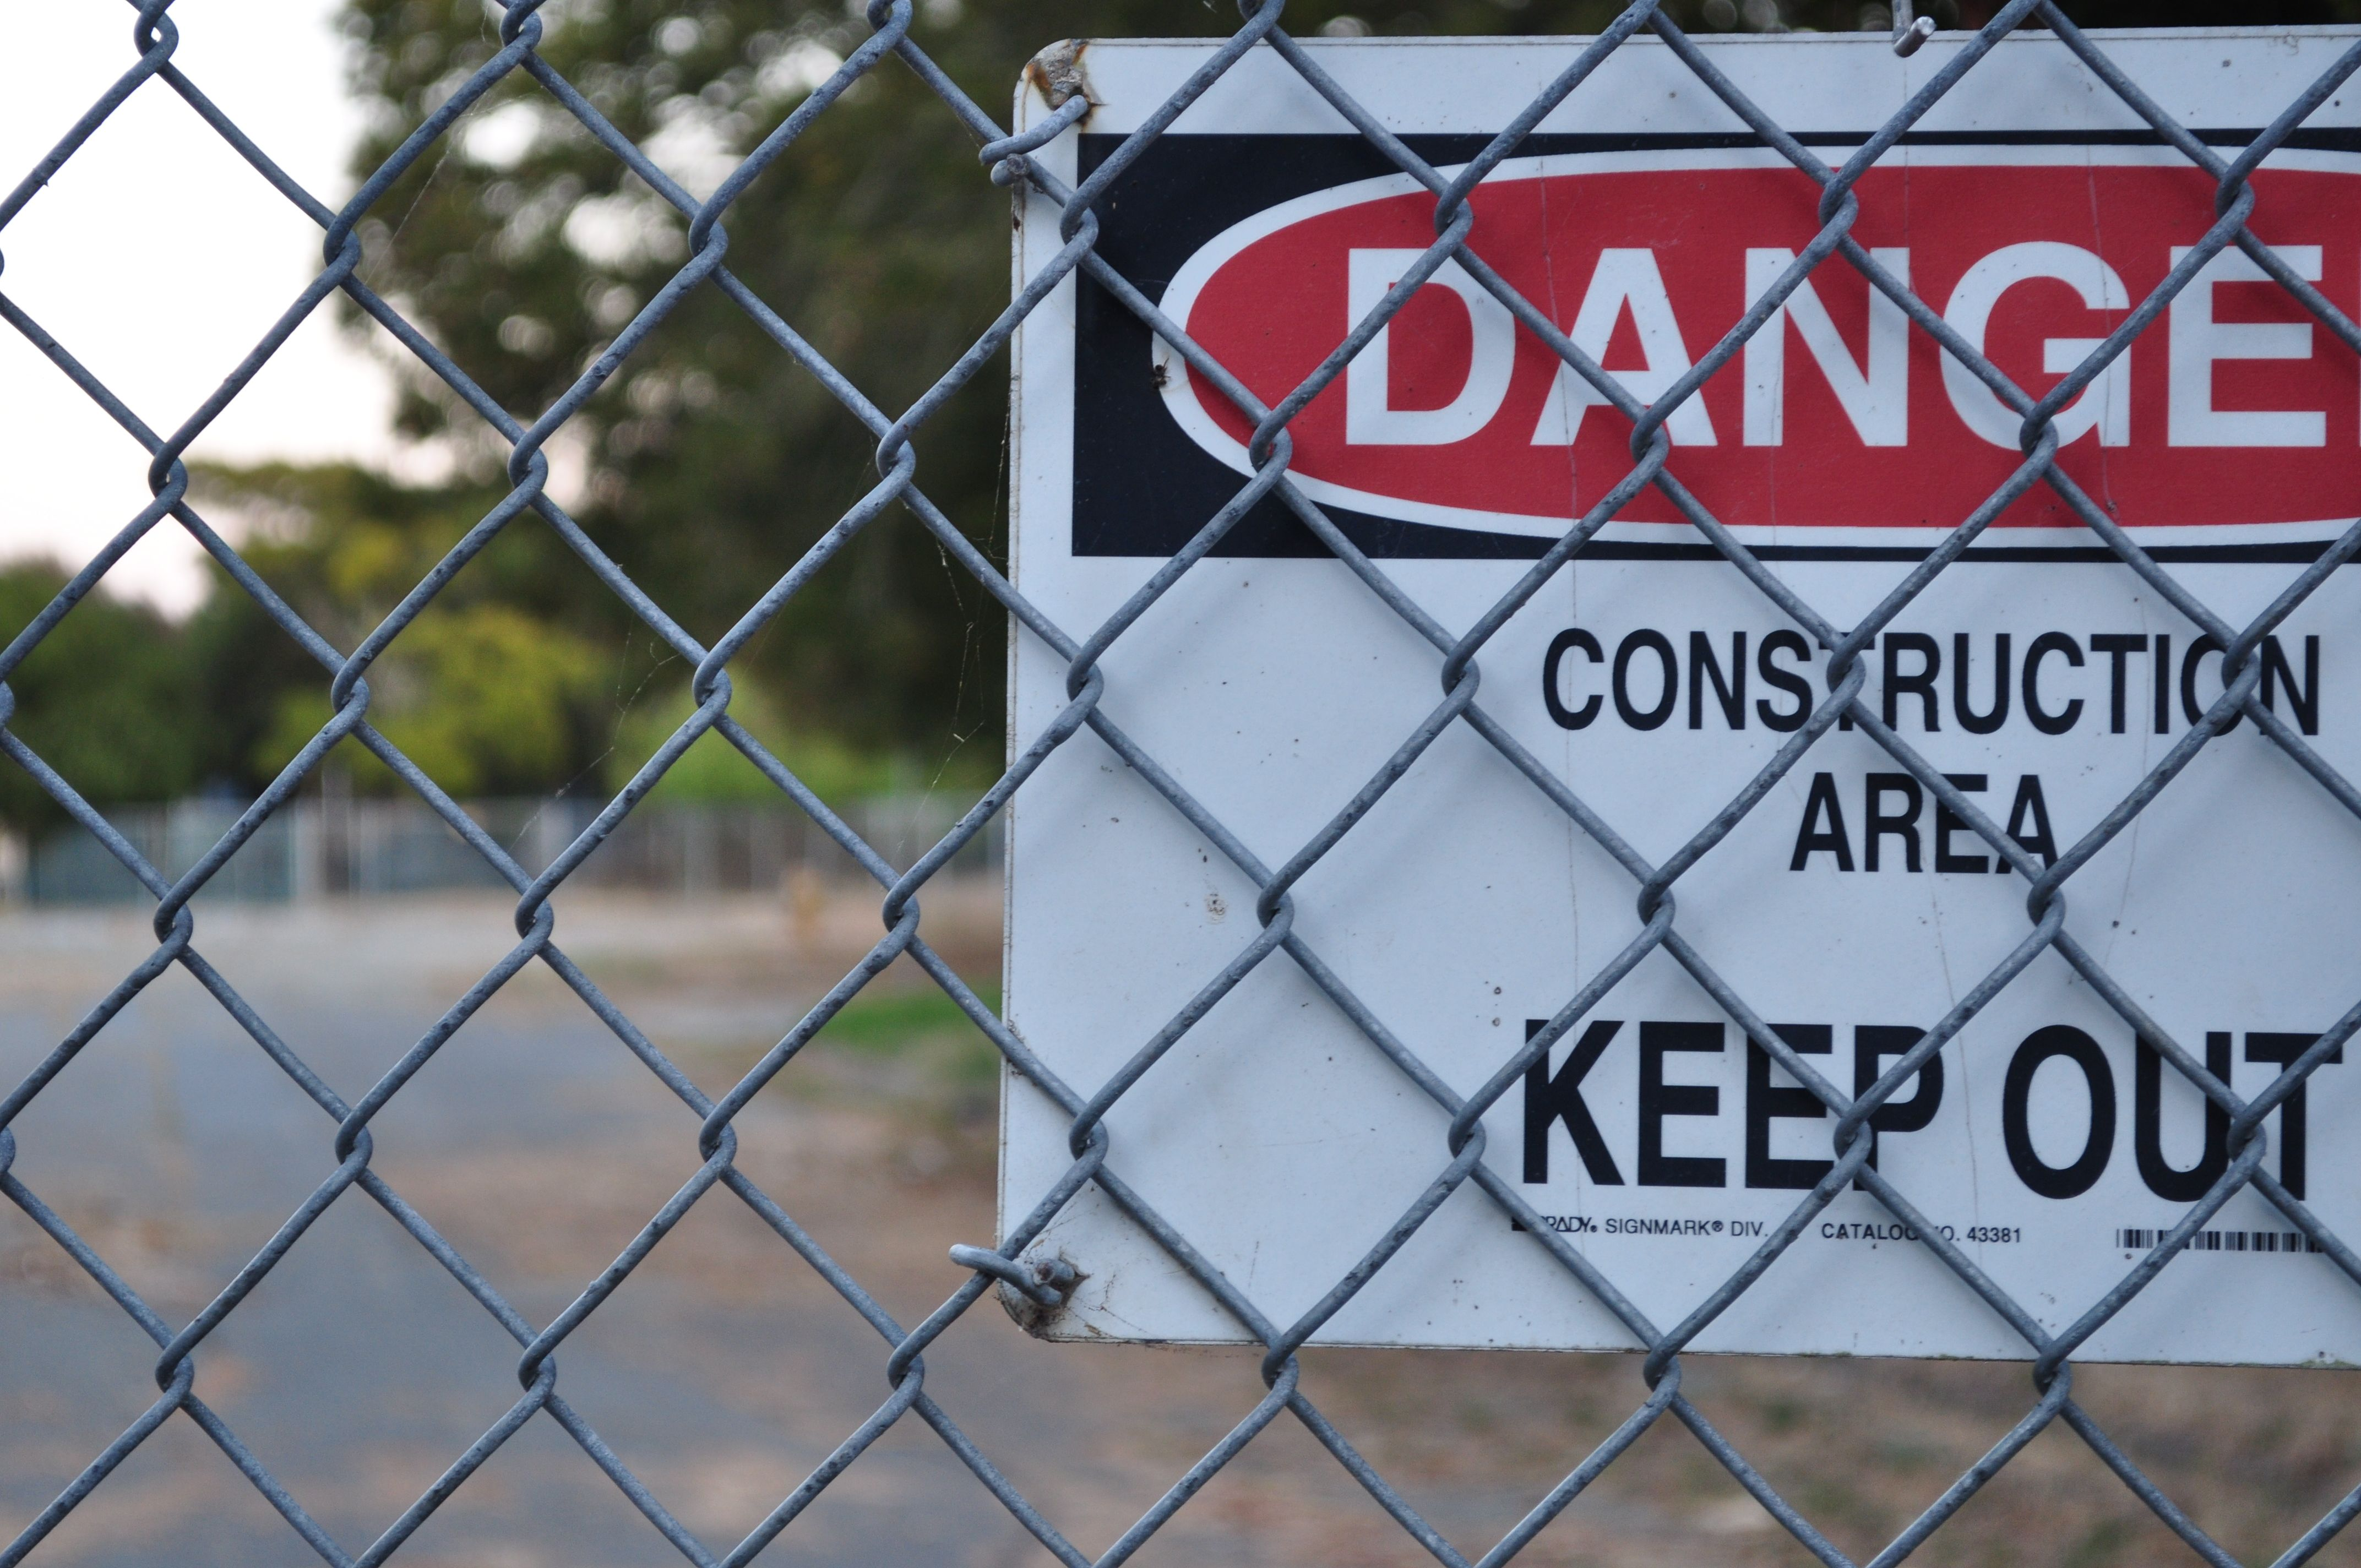 this was the closest I could get to the abandoned neighborhoods. they are fenced off and under strict surveillance.